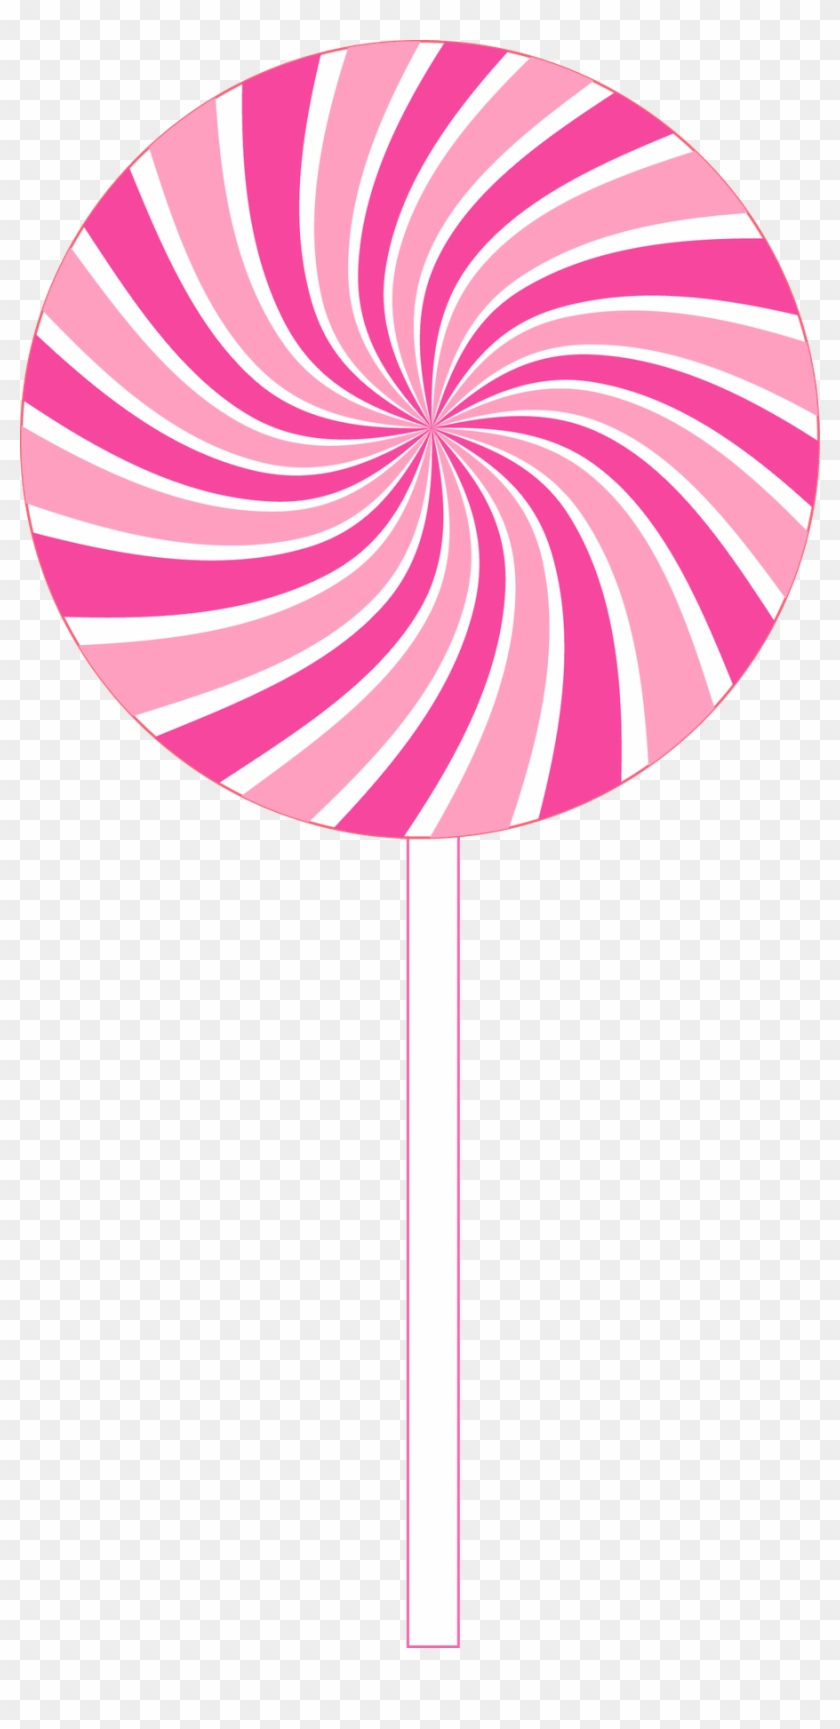 Willy wonka sweets clipart image free library Png Free Stock Circus Cotton Candy Clipart - Willy Wonka ... image free library